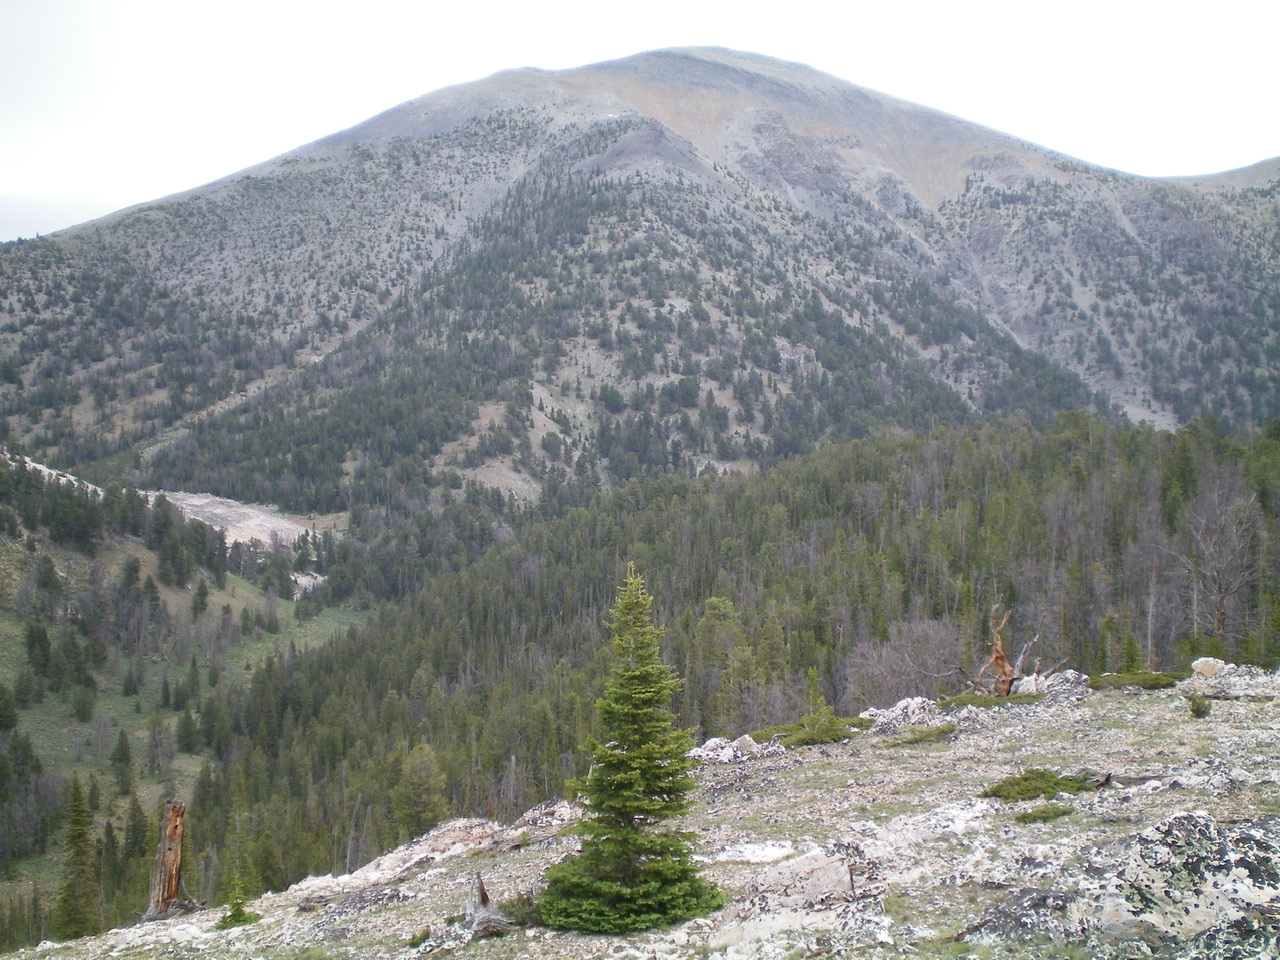 The upper Southeast Ridge (dead-center and forested) of Sheep Mountain, as viewed from the Northeast Ridge of Peak 9188. Higher up, it jogs L then jogs R to reach the summit area. Livingston Douglas Photo